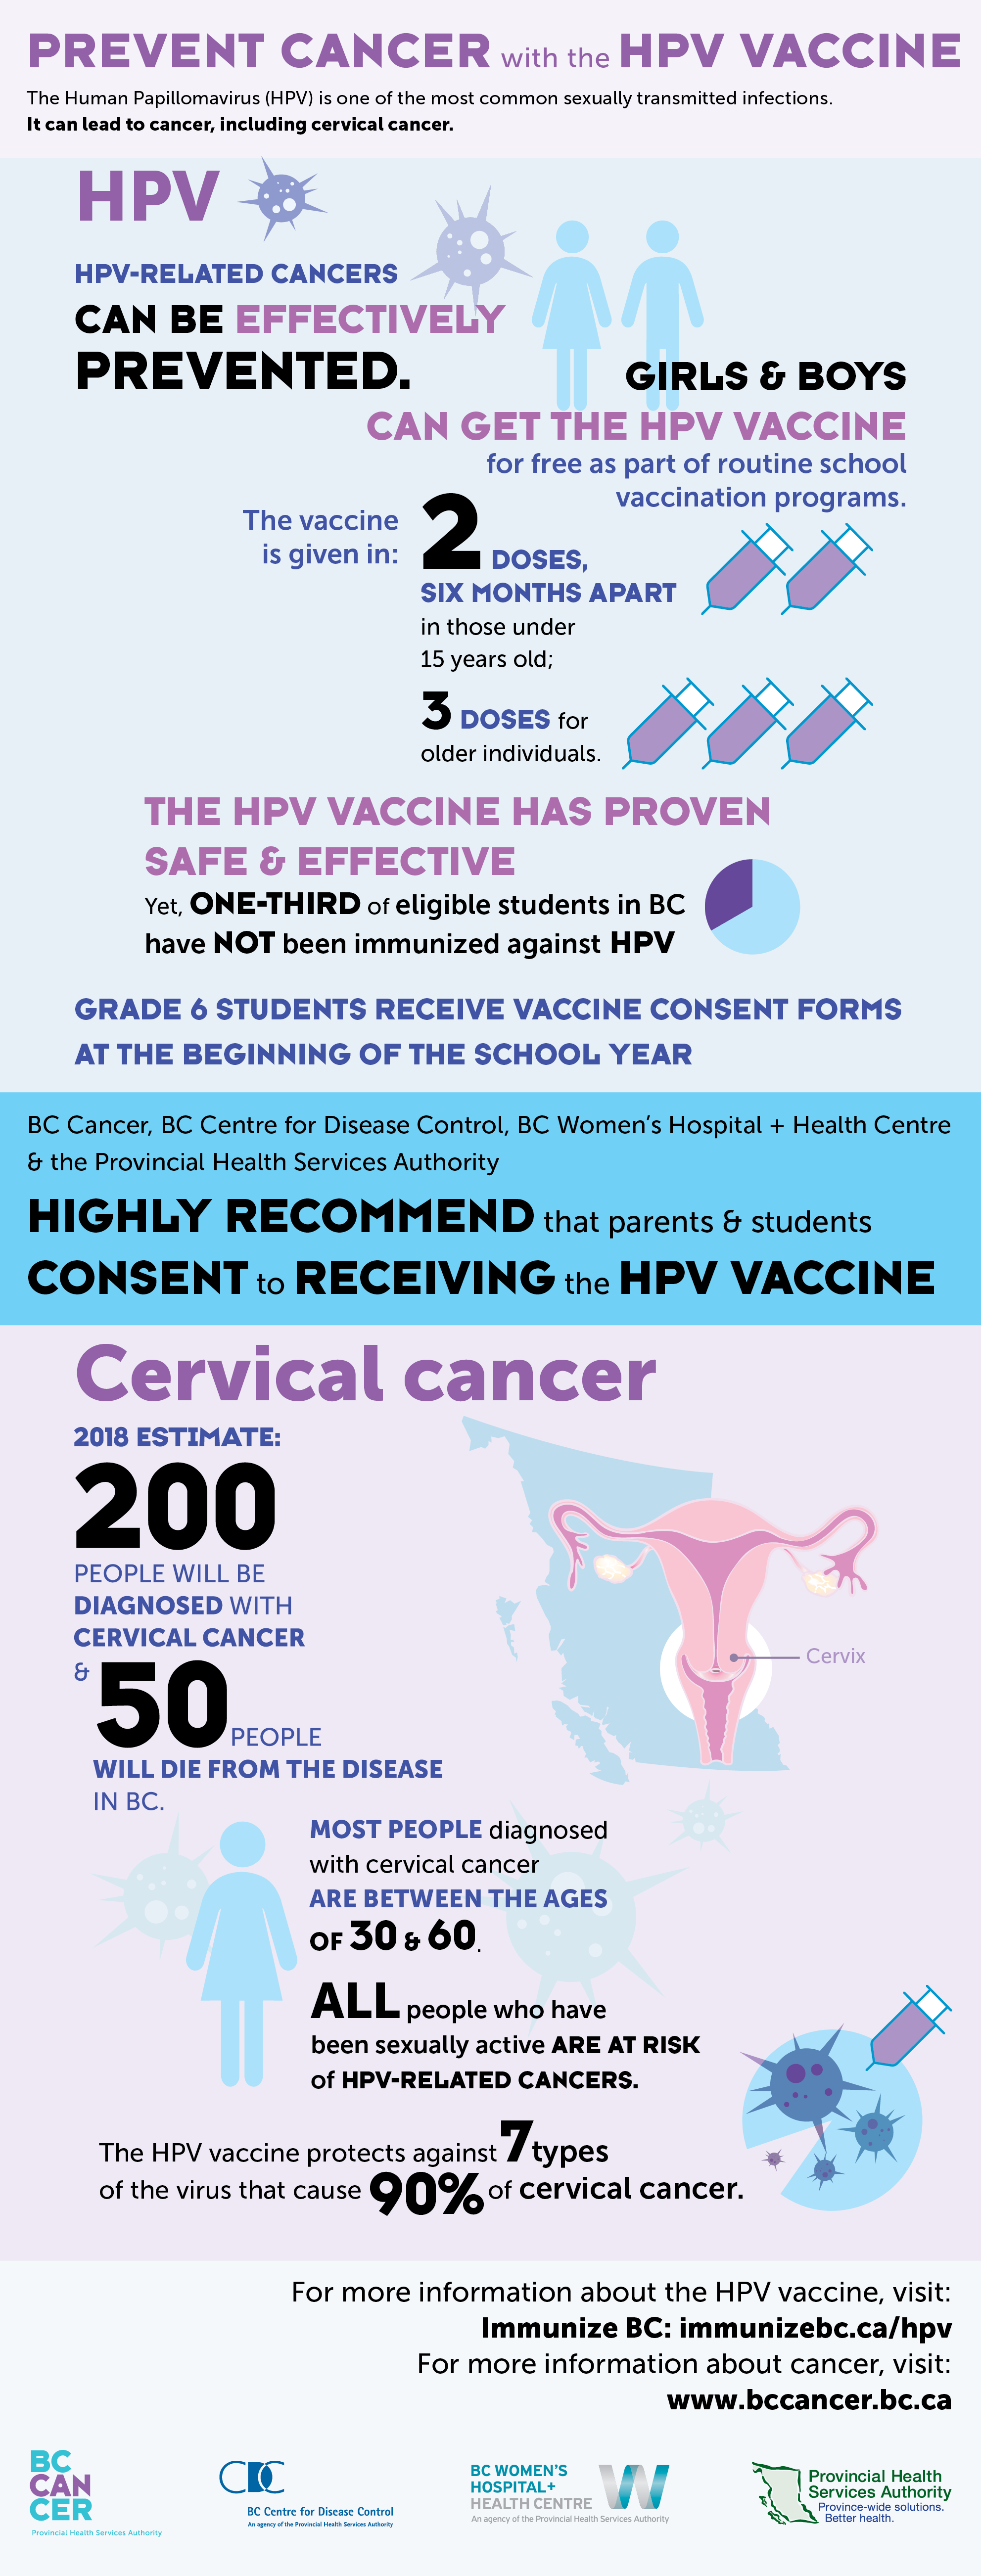 Prevent cancer with the HPV vaccine